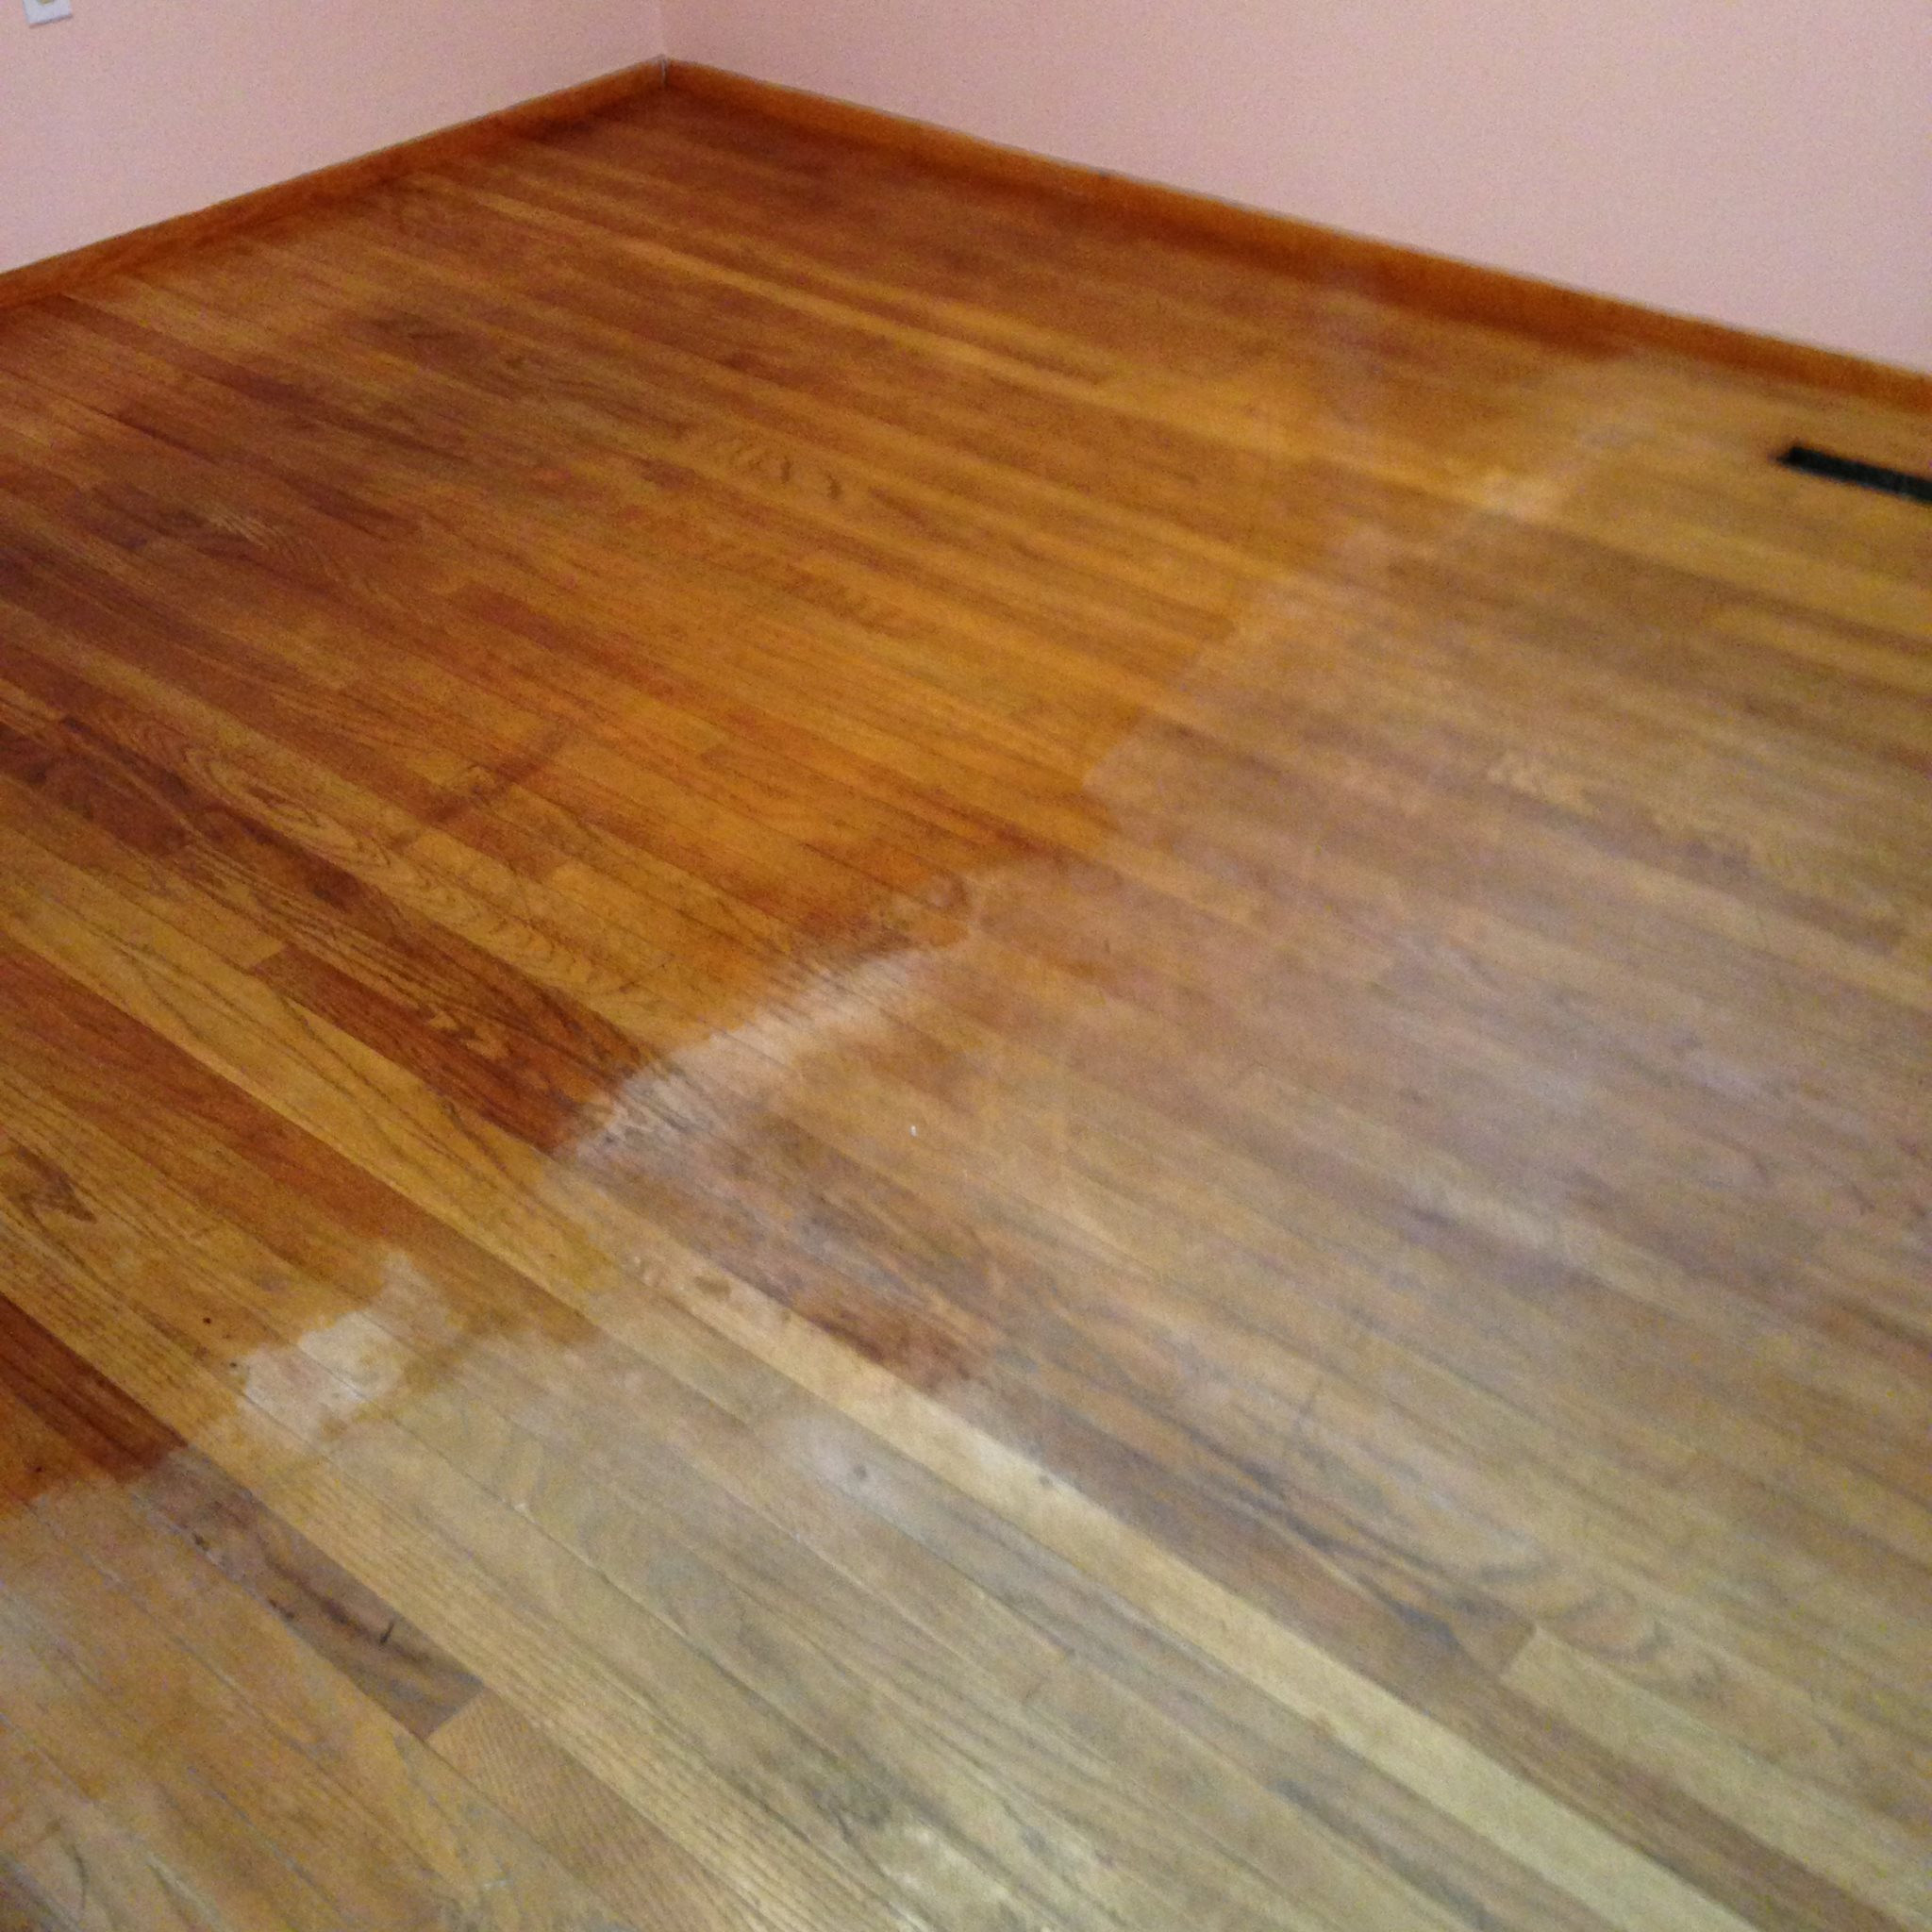 protect hardwood floors from scratches of 15 wood floor hacks every homeowner needs to know with regard to wood floor hacks 15